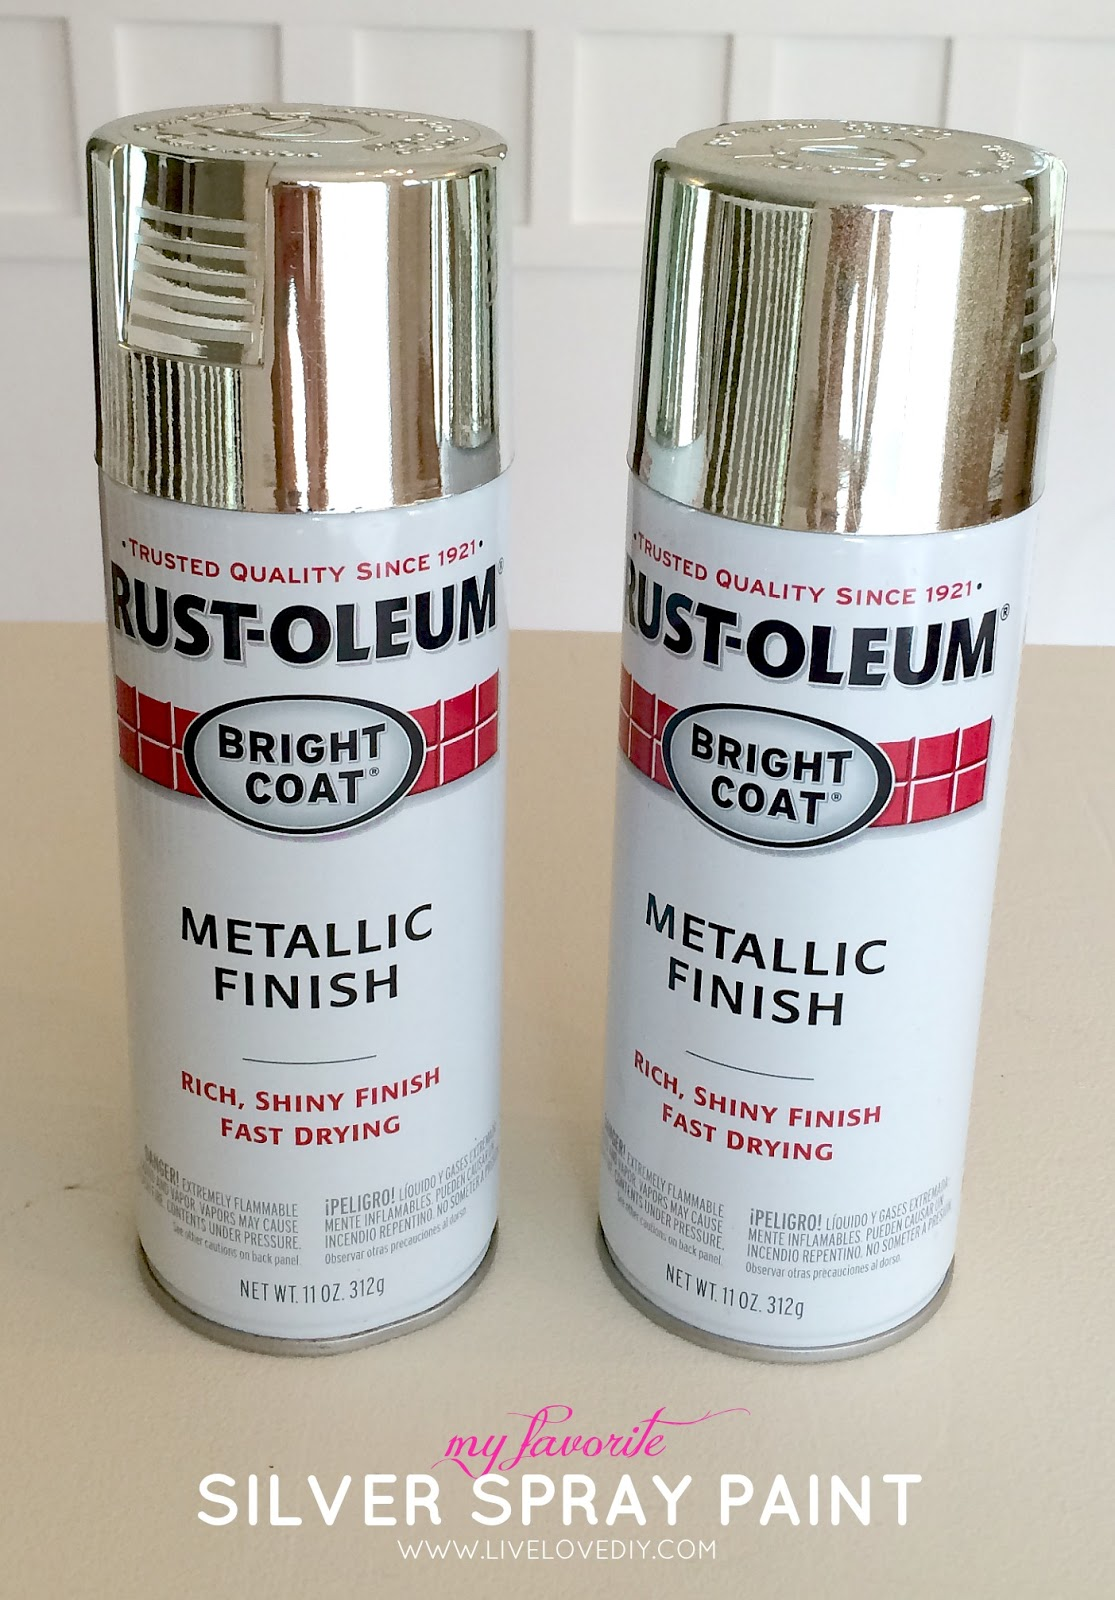 then i grabbed a few cans of rustoleum in bright coat silver because. Black Bedroom Furniture Sets. Home Design Ideas